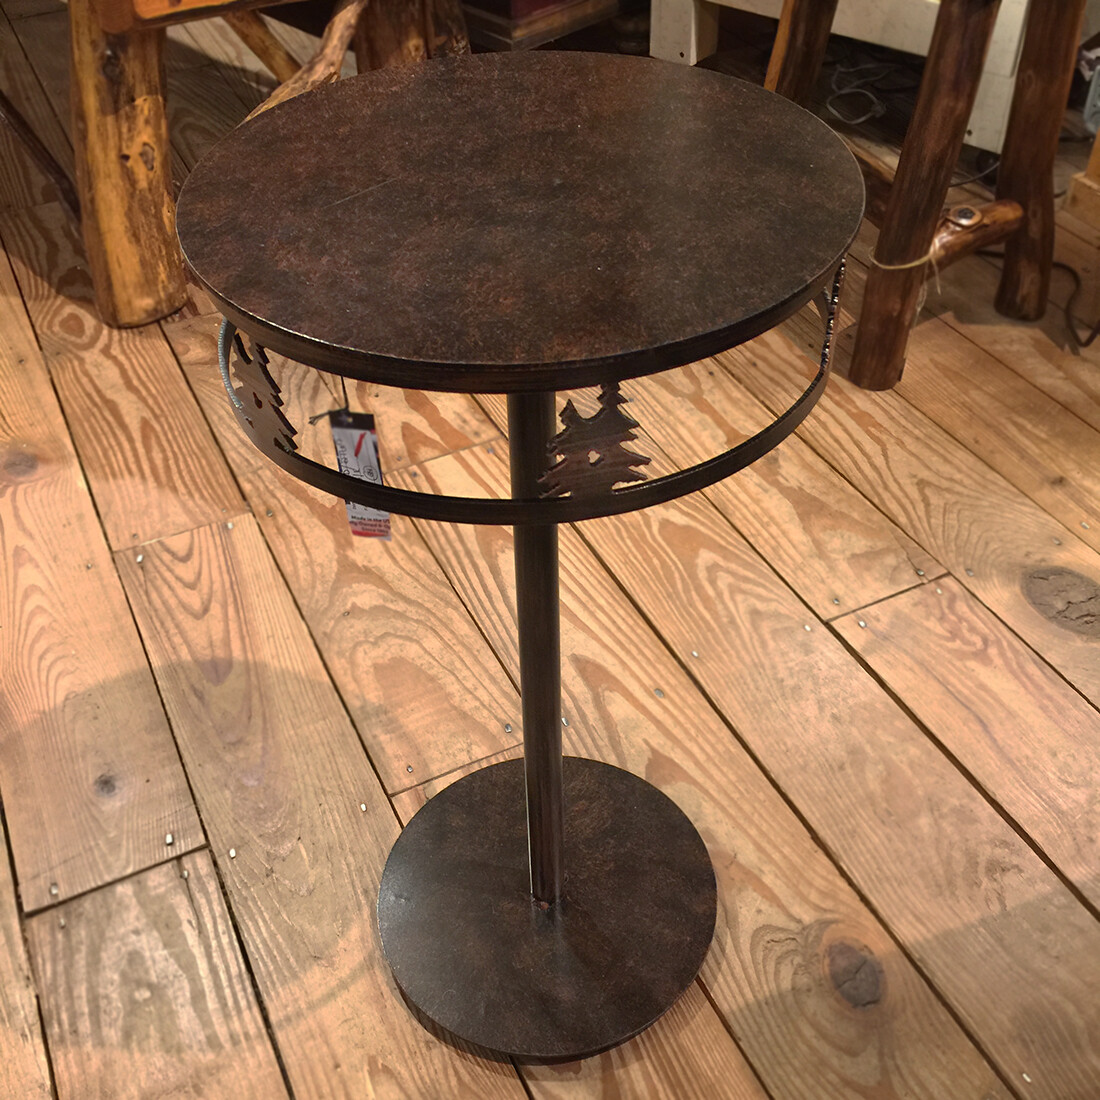 Iron Band of Double Pine Trees Drink Table